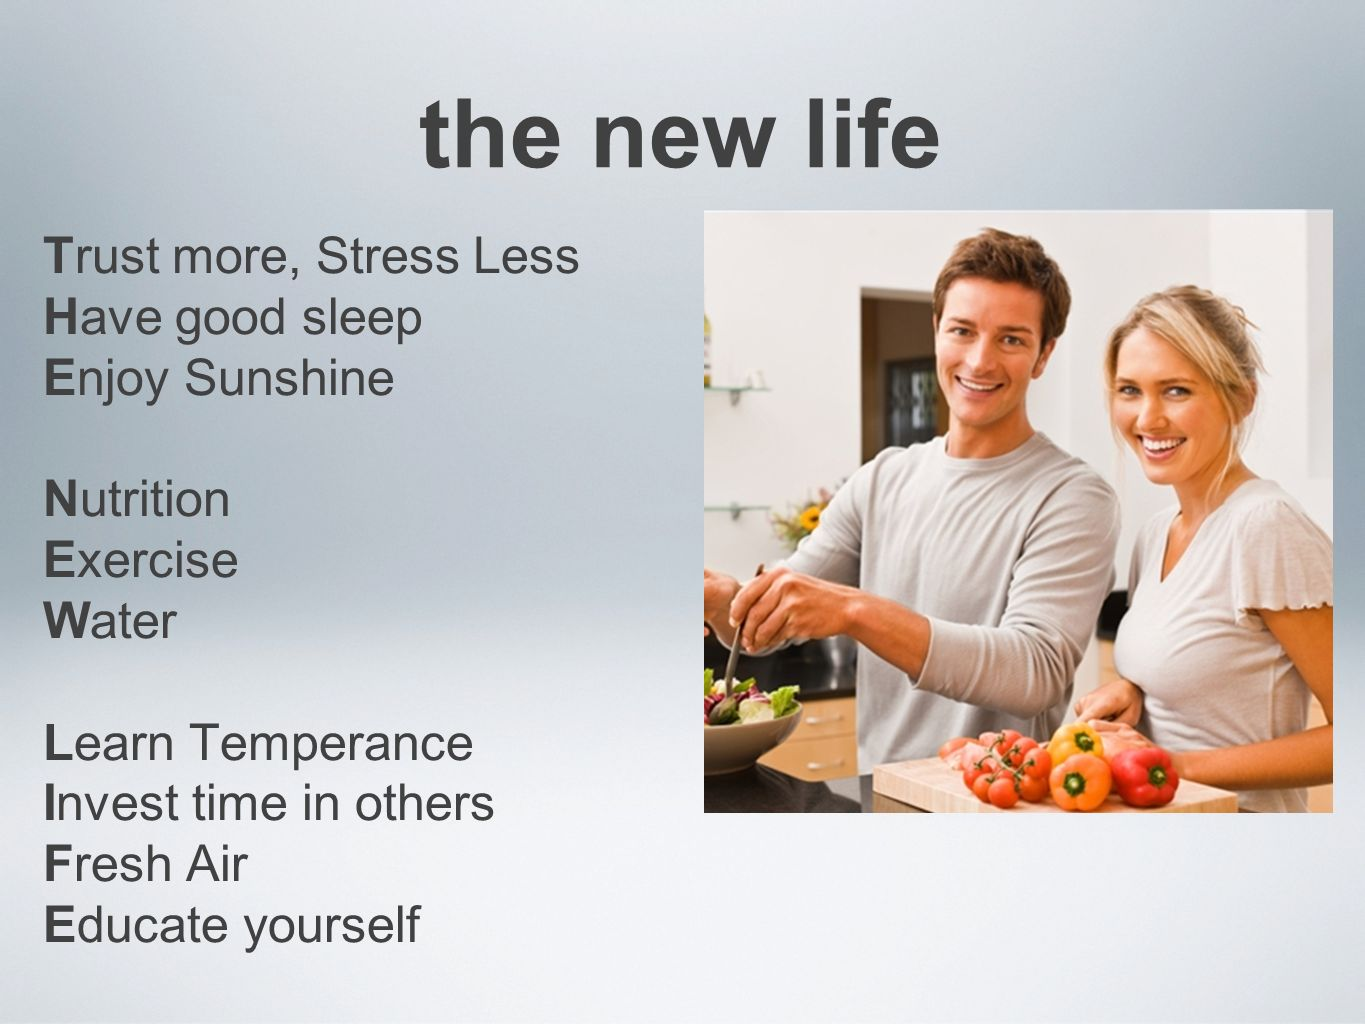 the new life Trust more, Stress Less Have good sleep Enjoy Sunshine Nutrition Exercise Water Learn Temperance Invest time in others Fresh Air Educate